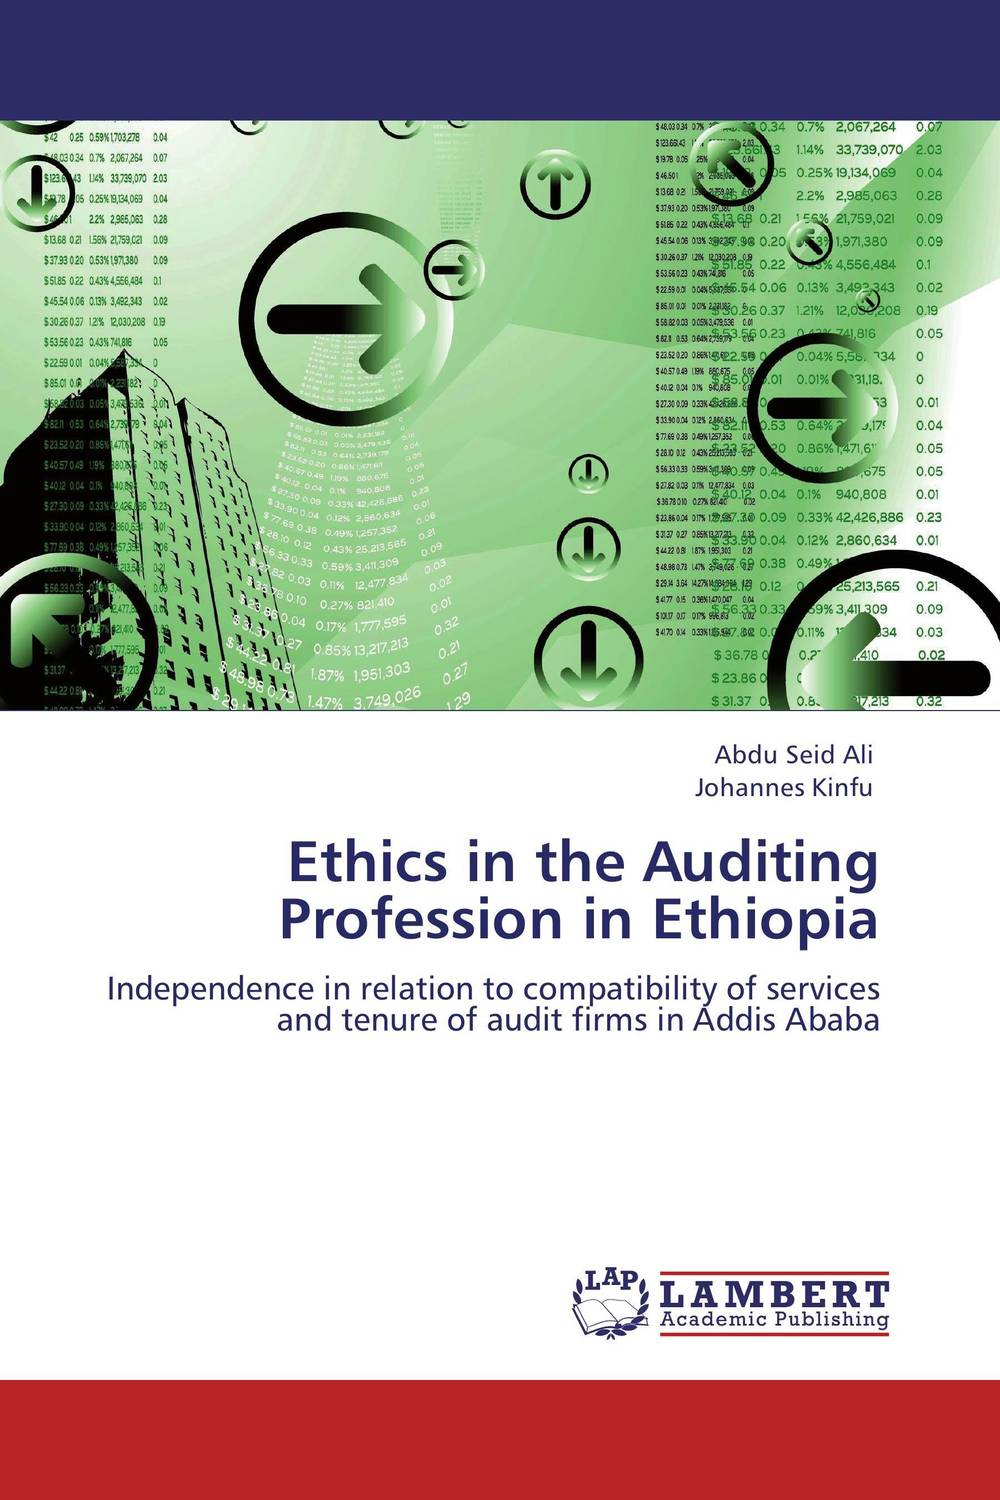 Ethics in the Auditing Profession in Ethiopia